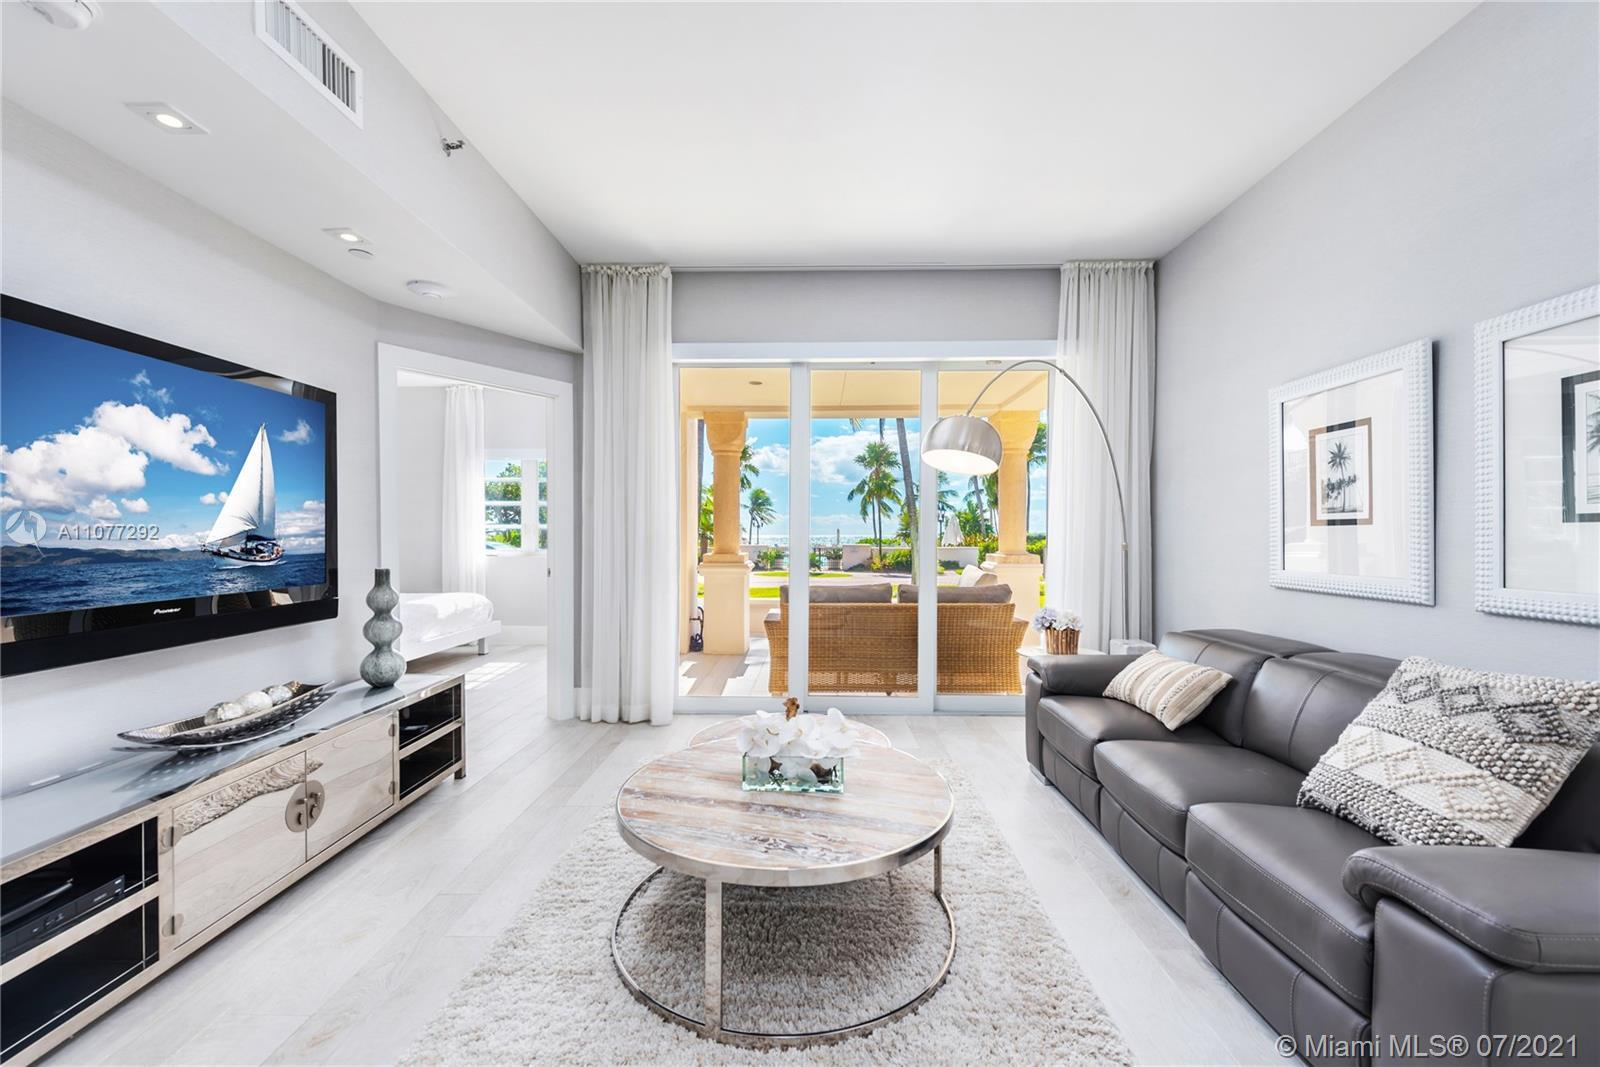 Experience Fisher Island living at its finest in this beautifully renovated 3 bedroom, 3.5 bath grou